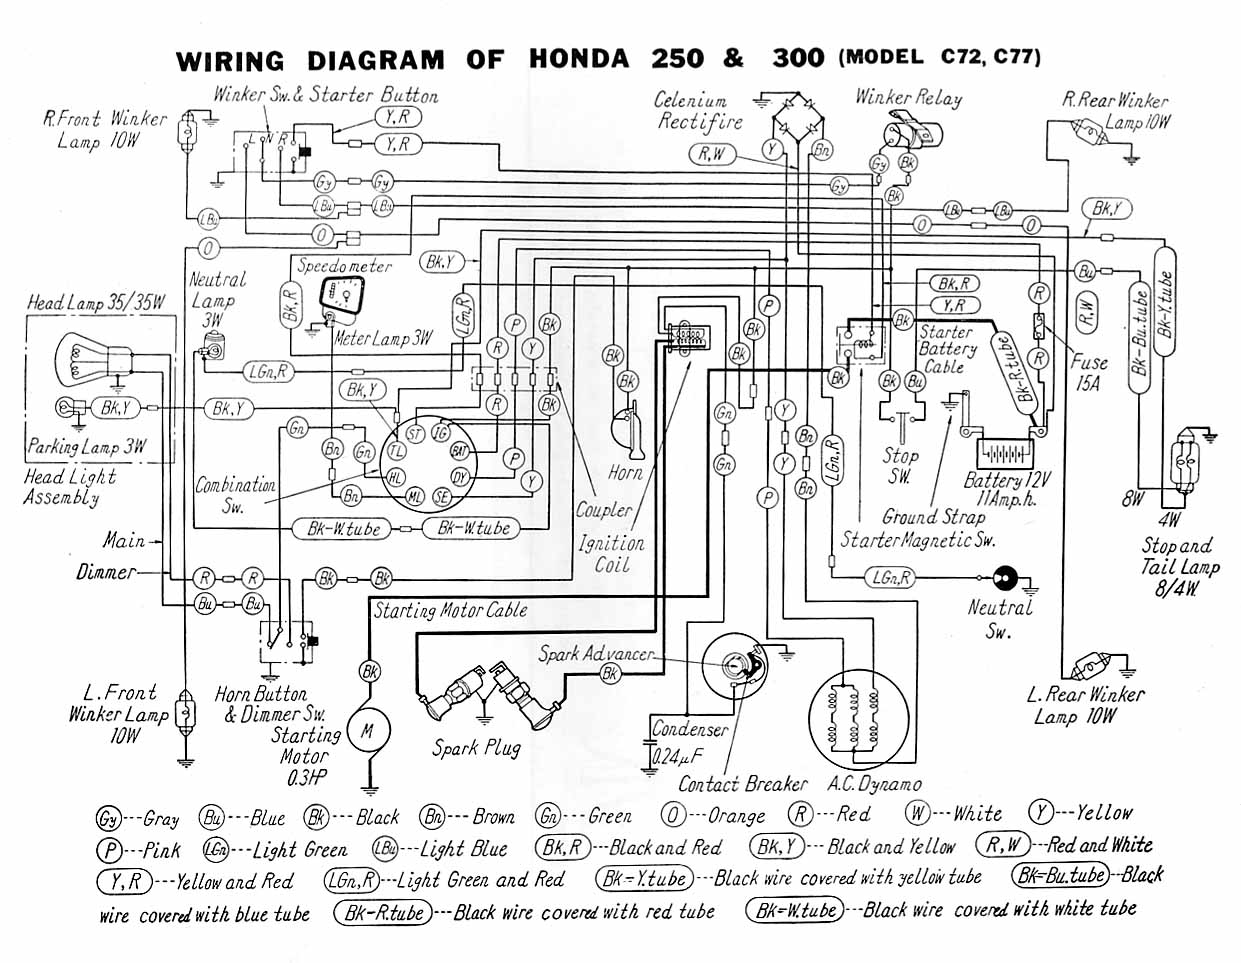 Xl350 Wiring Diagram | New Wiring Resources 2019 on switch diagrams, internet of things diagrams, transformer diagrams, honda motorcycle repair diagrams, motor diagrams, smart car diagrams, battery diagrams, friendship bracelet diagrams, gmc fuse box diagrams, lighting diagrams, engine diagrams, electrical diagrams, troubleshooting diagrams, electronic circuit diagrams, pinout diagrams, led circuit diagrams, hvac diagrams, series and parallel circuits diagrams, sincgars radio configurations diagrams,